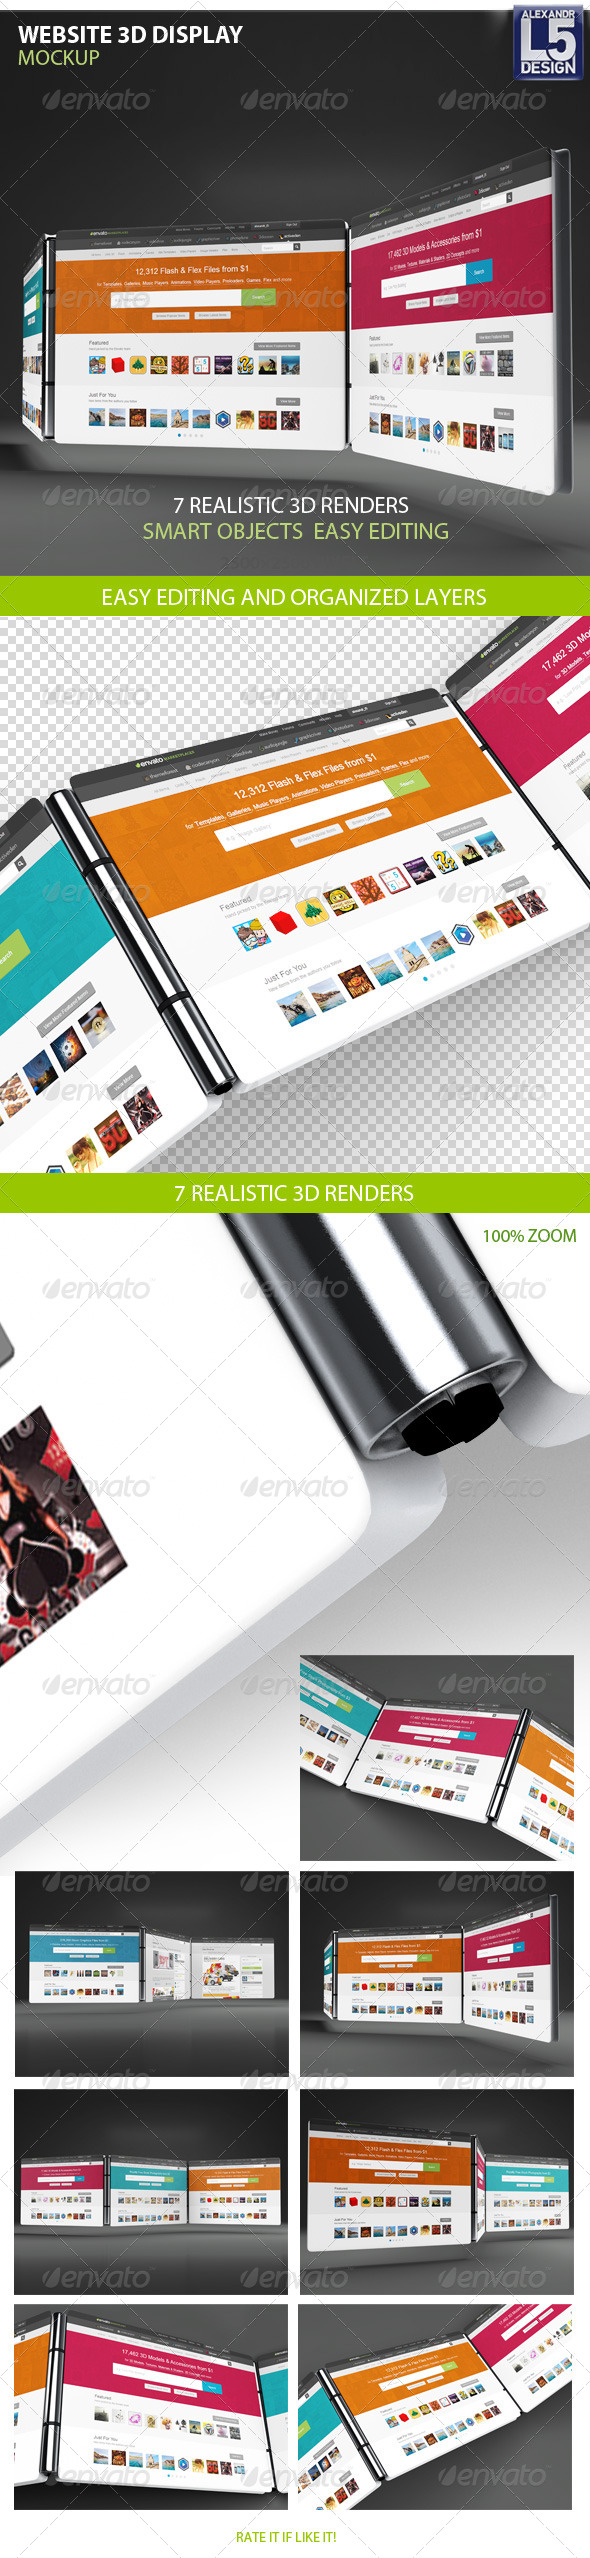 GraphicRiver Website 3D Display Mock-Up 8516544